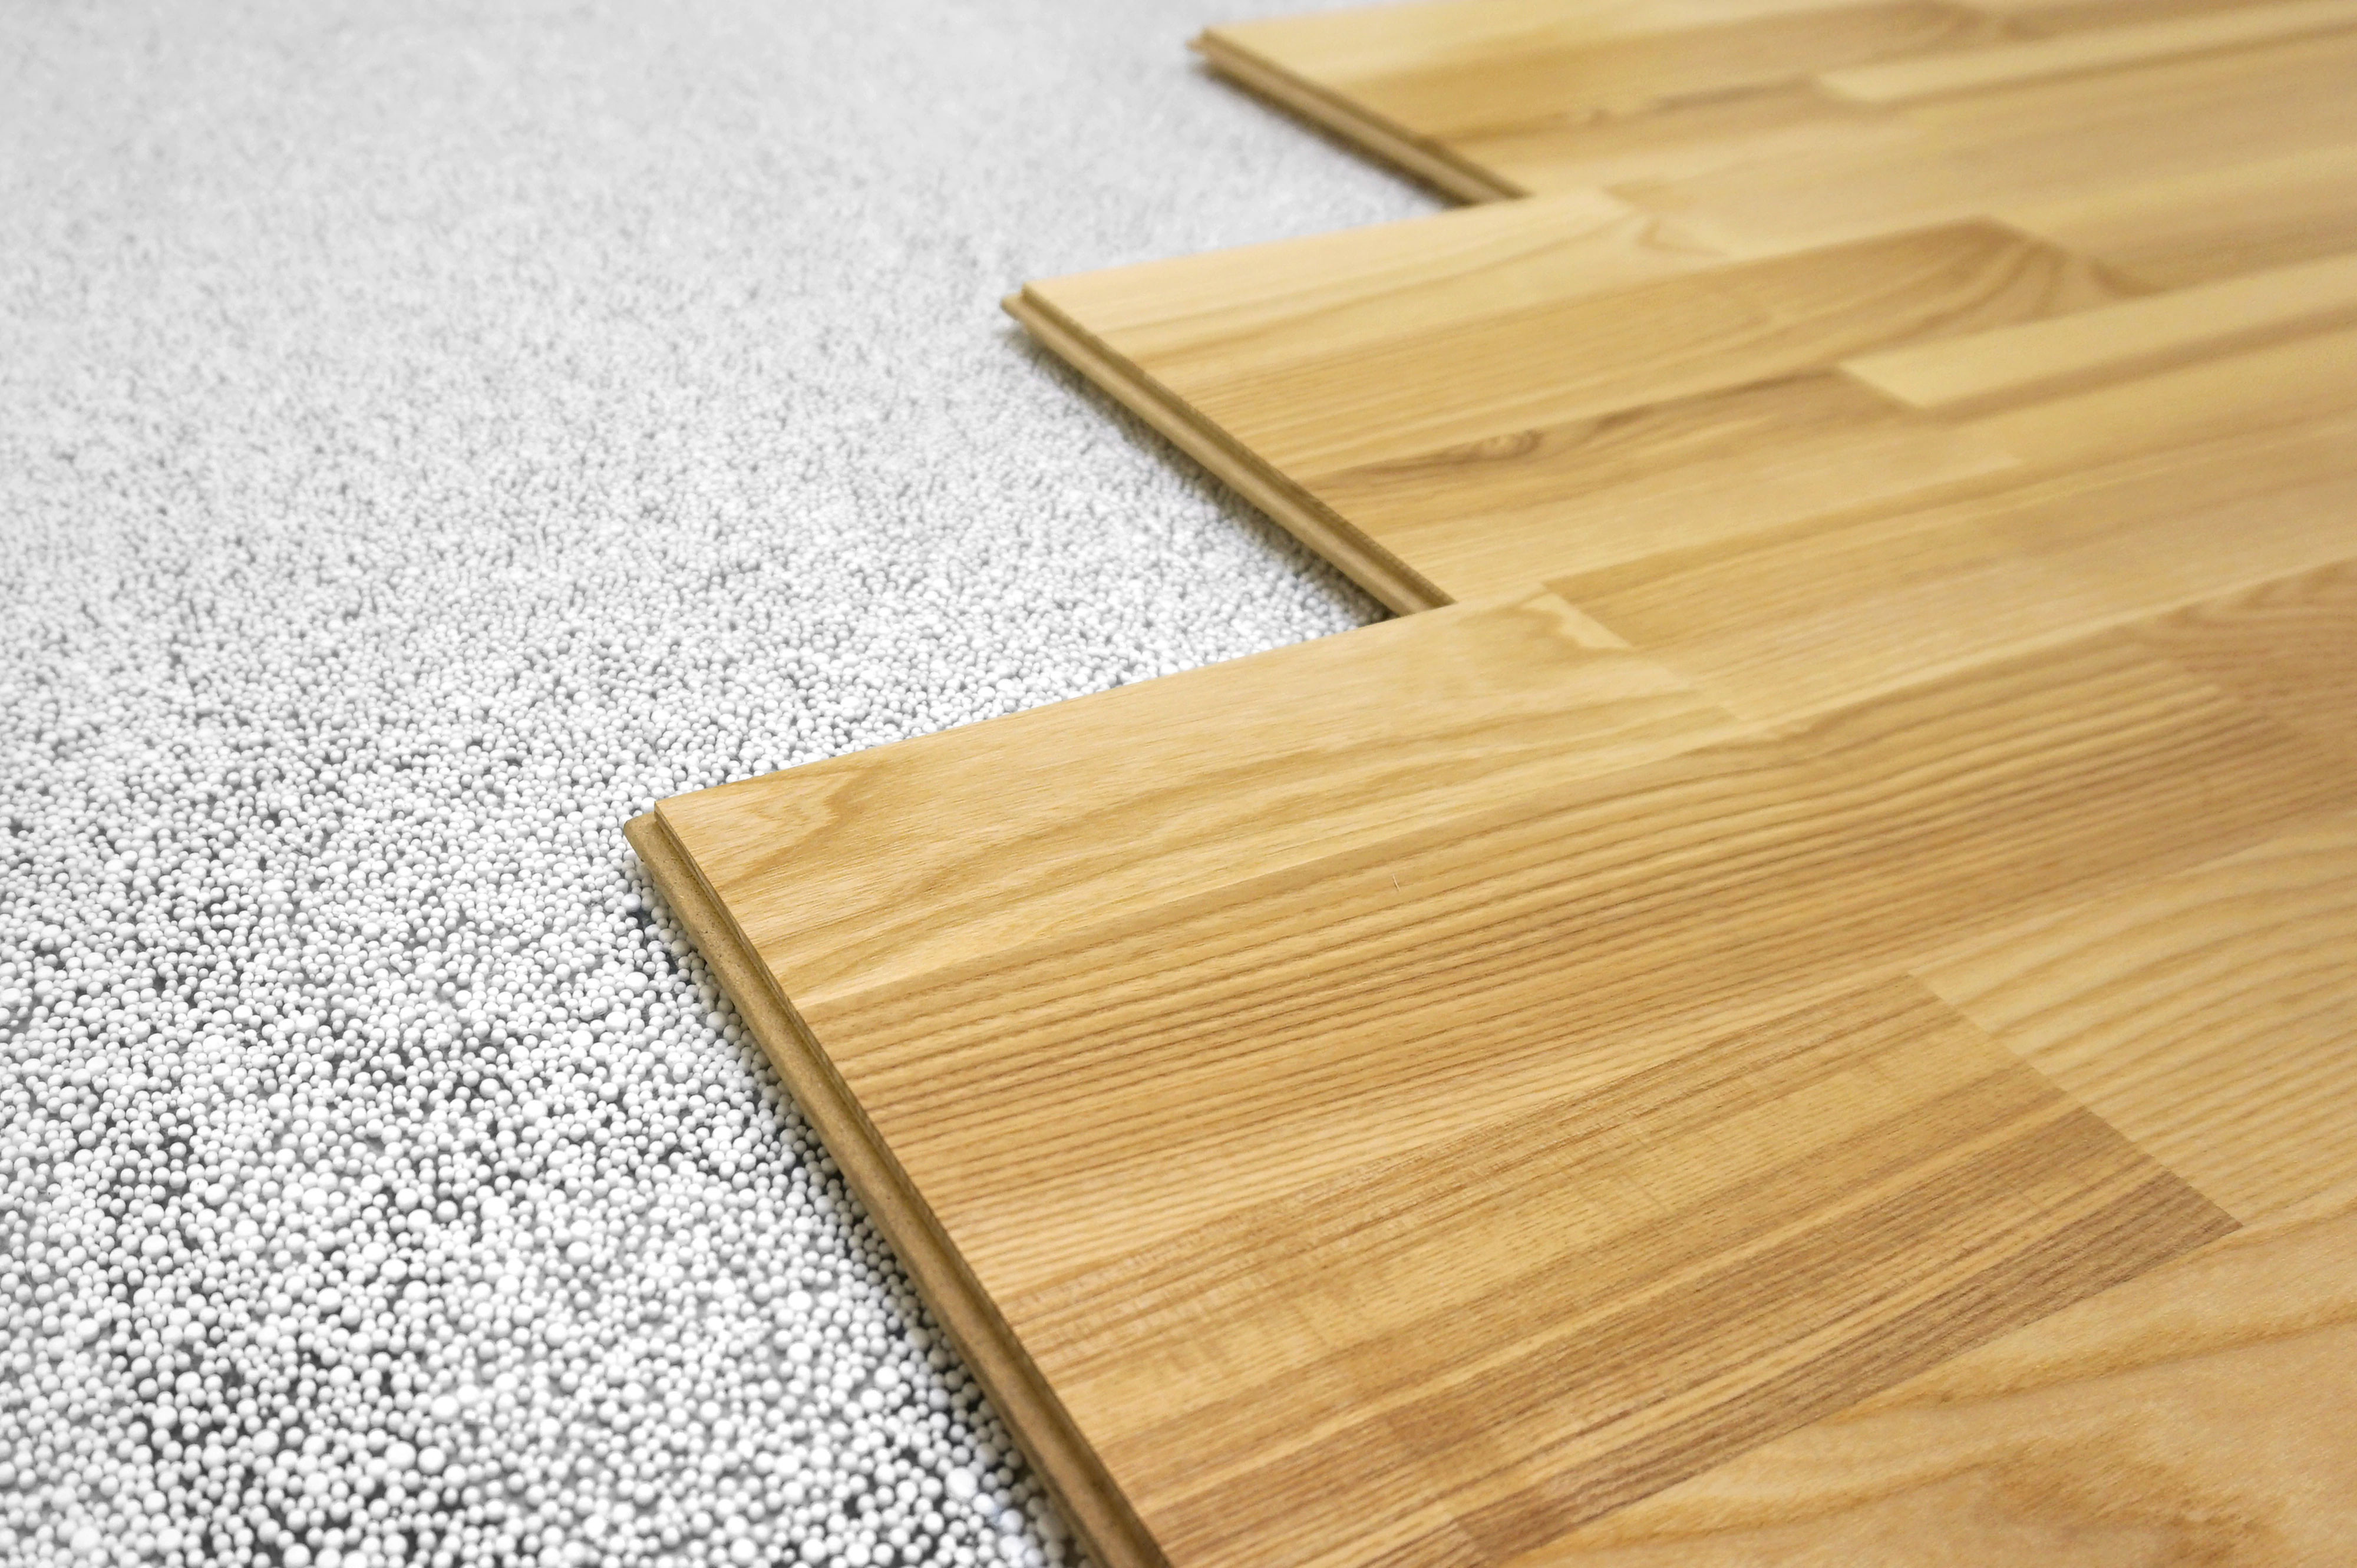 hardwood flooring ann arbor mi of what does it cost to install laminate flooring angies list intended for wood lam